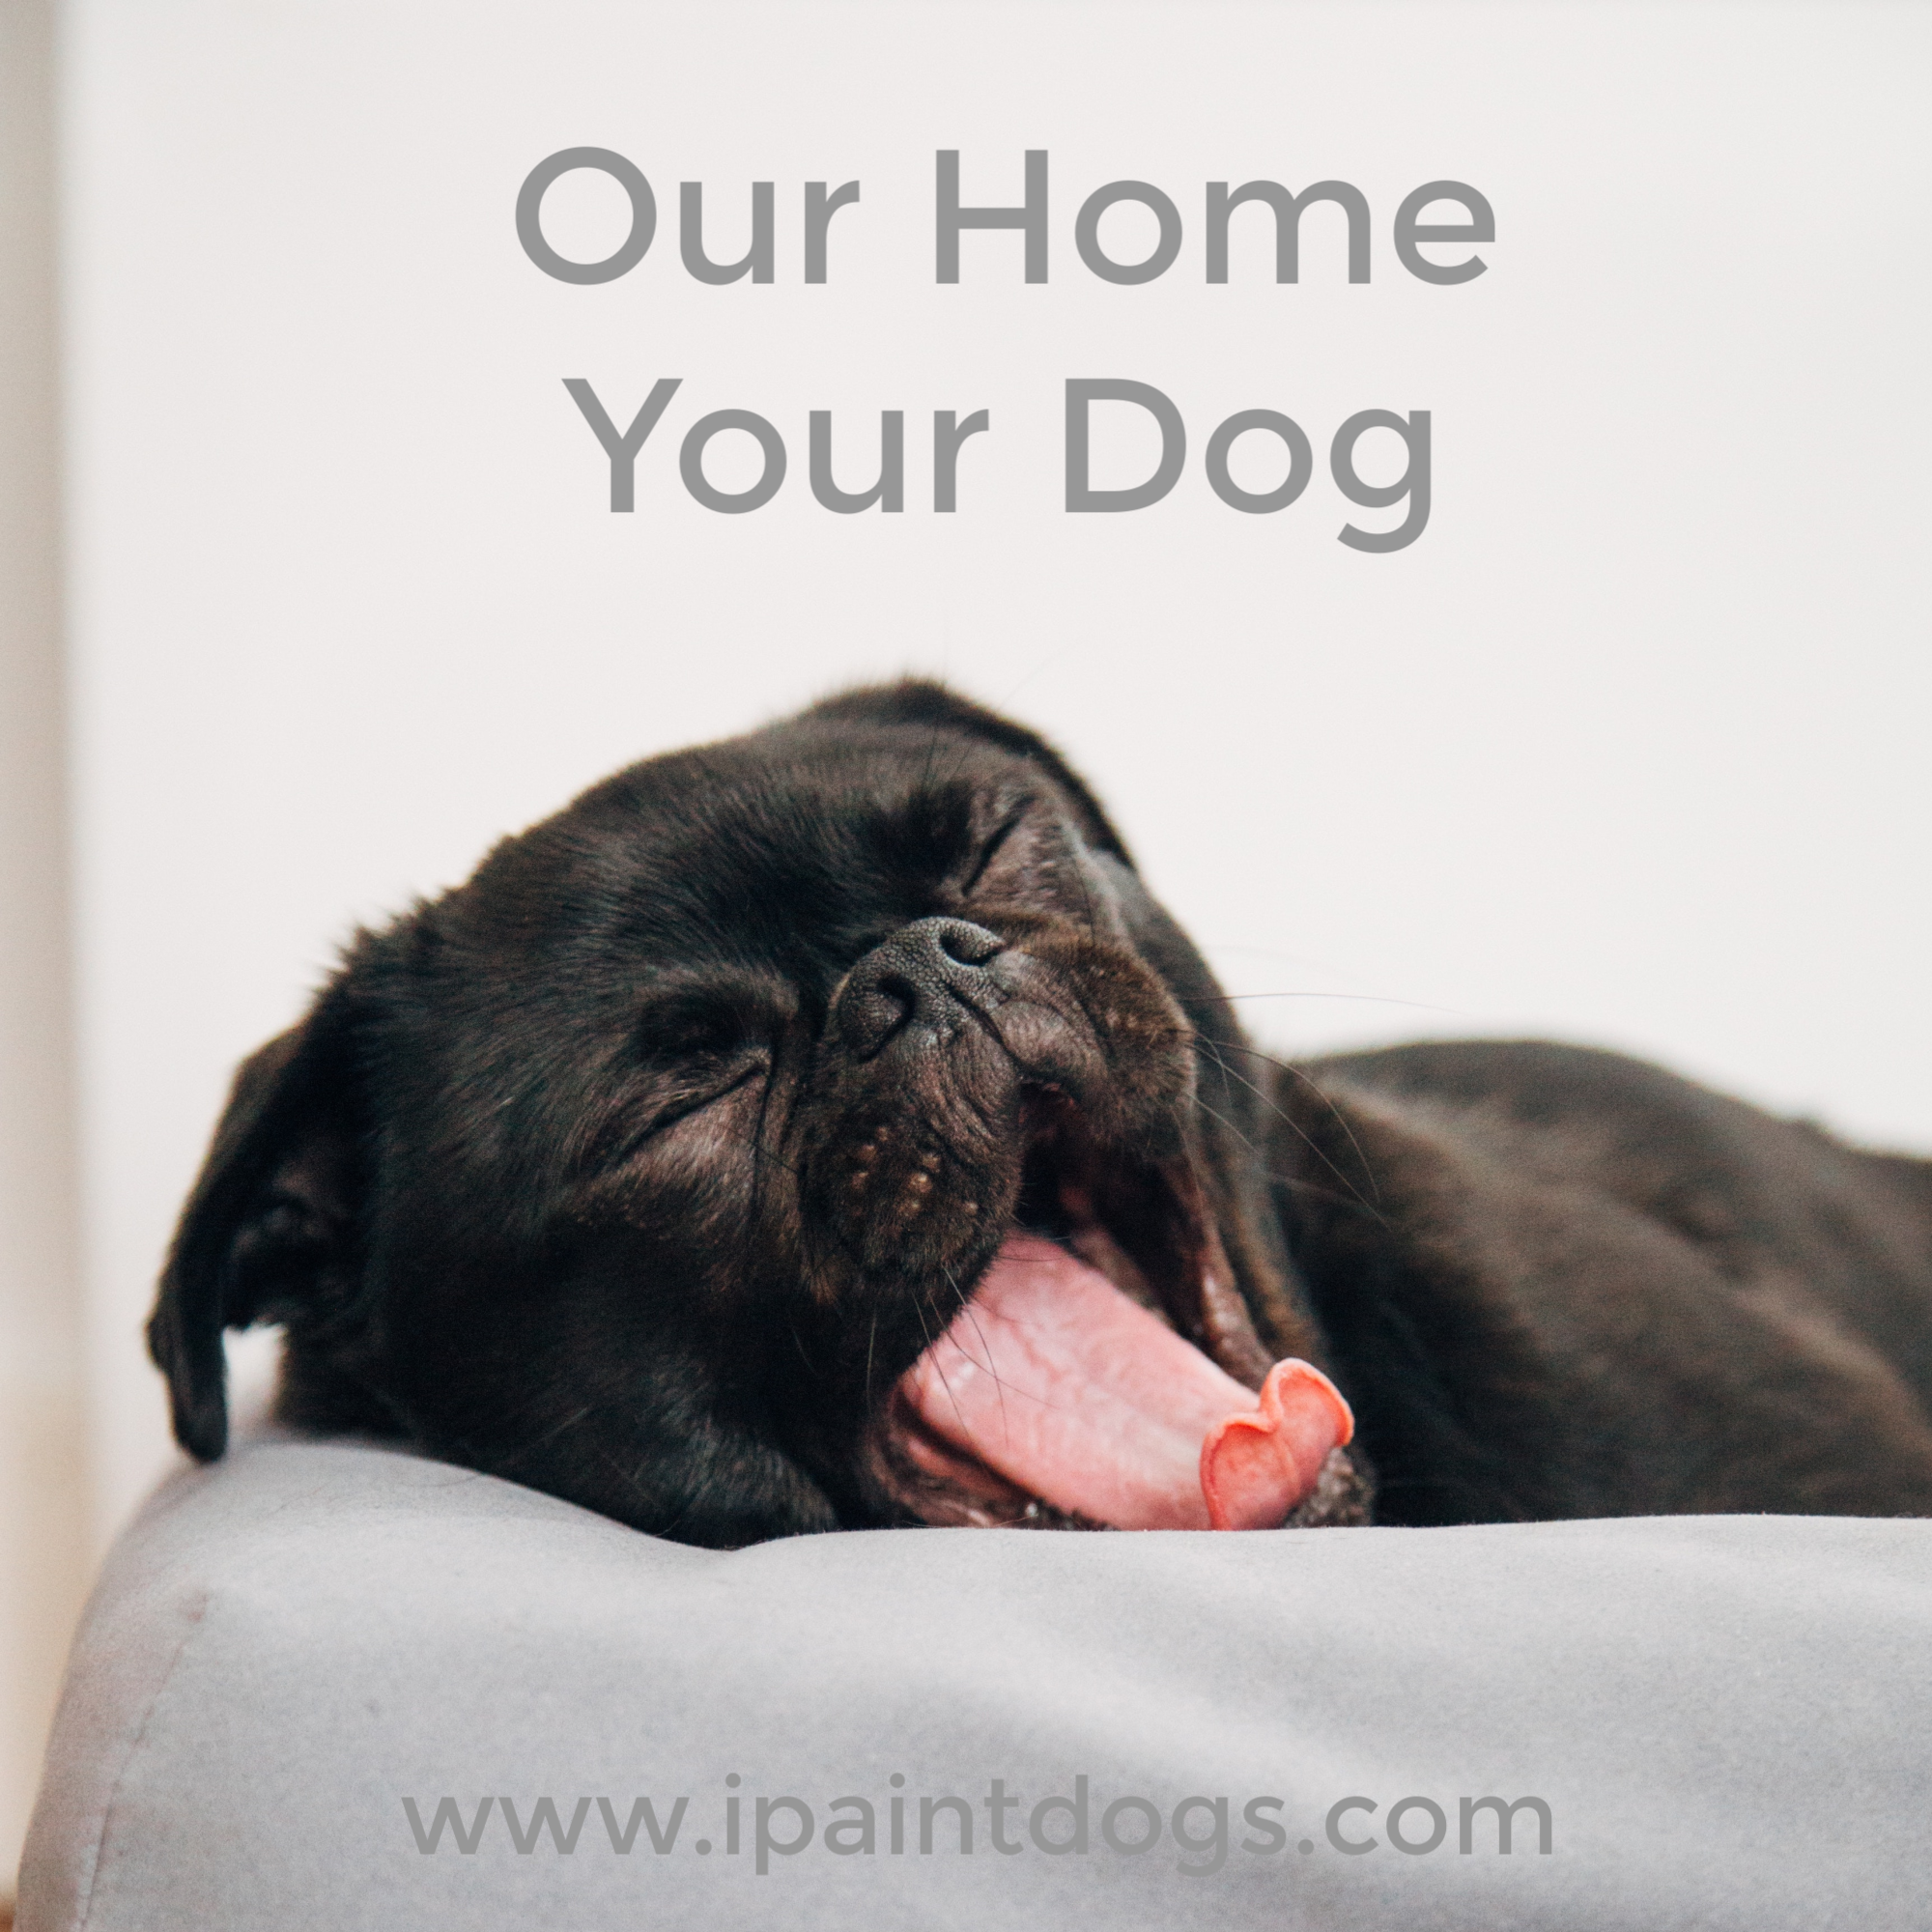 Our Home Your Dog, Samantha Barnes is ipaintdogs.com